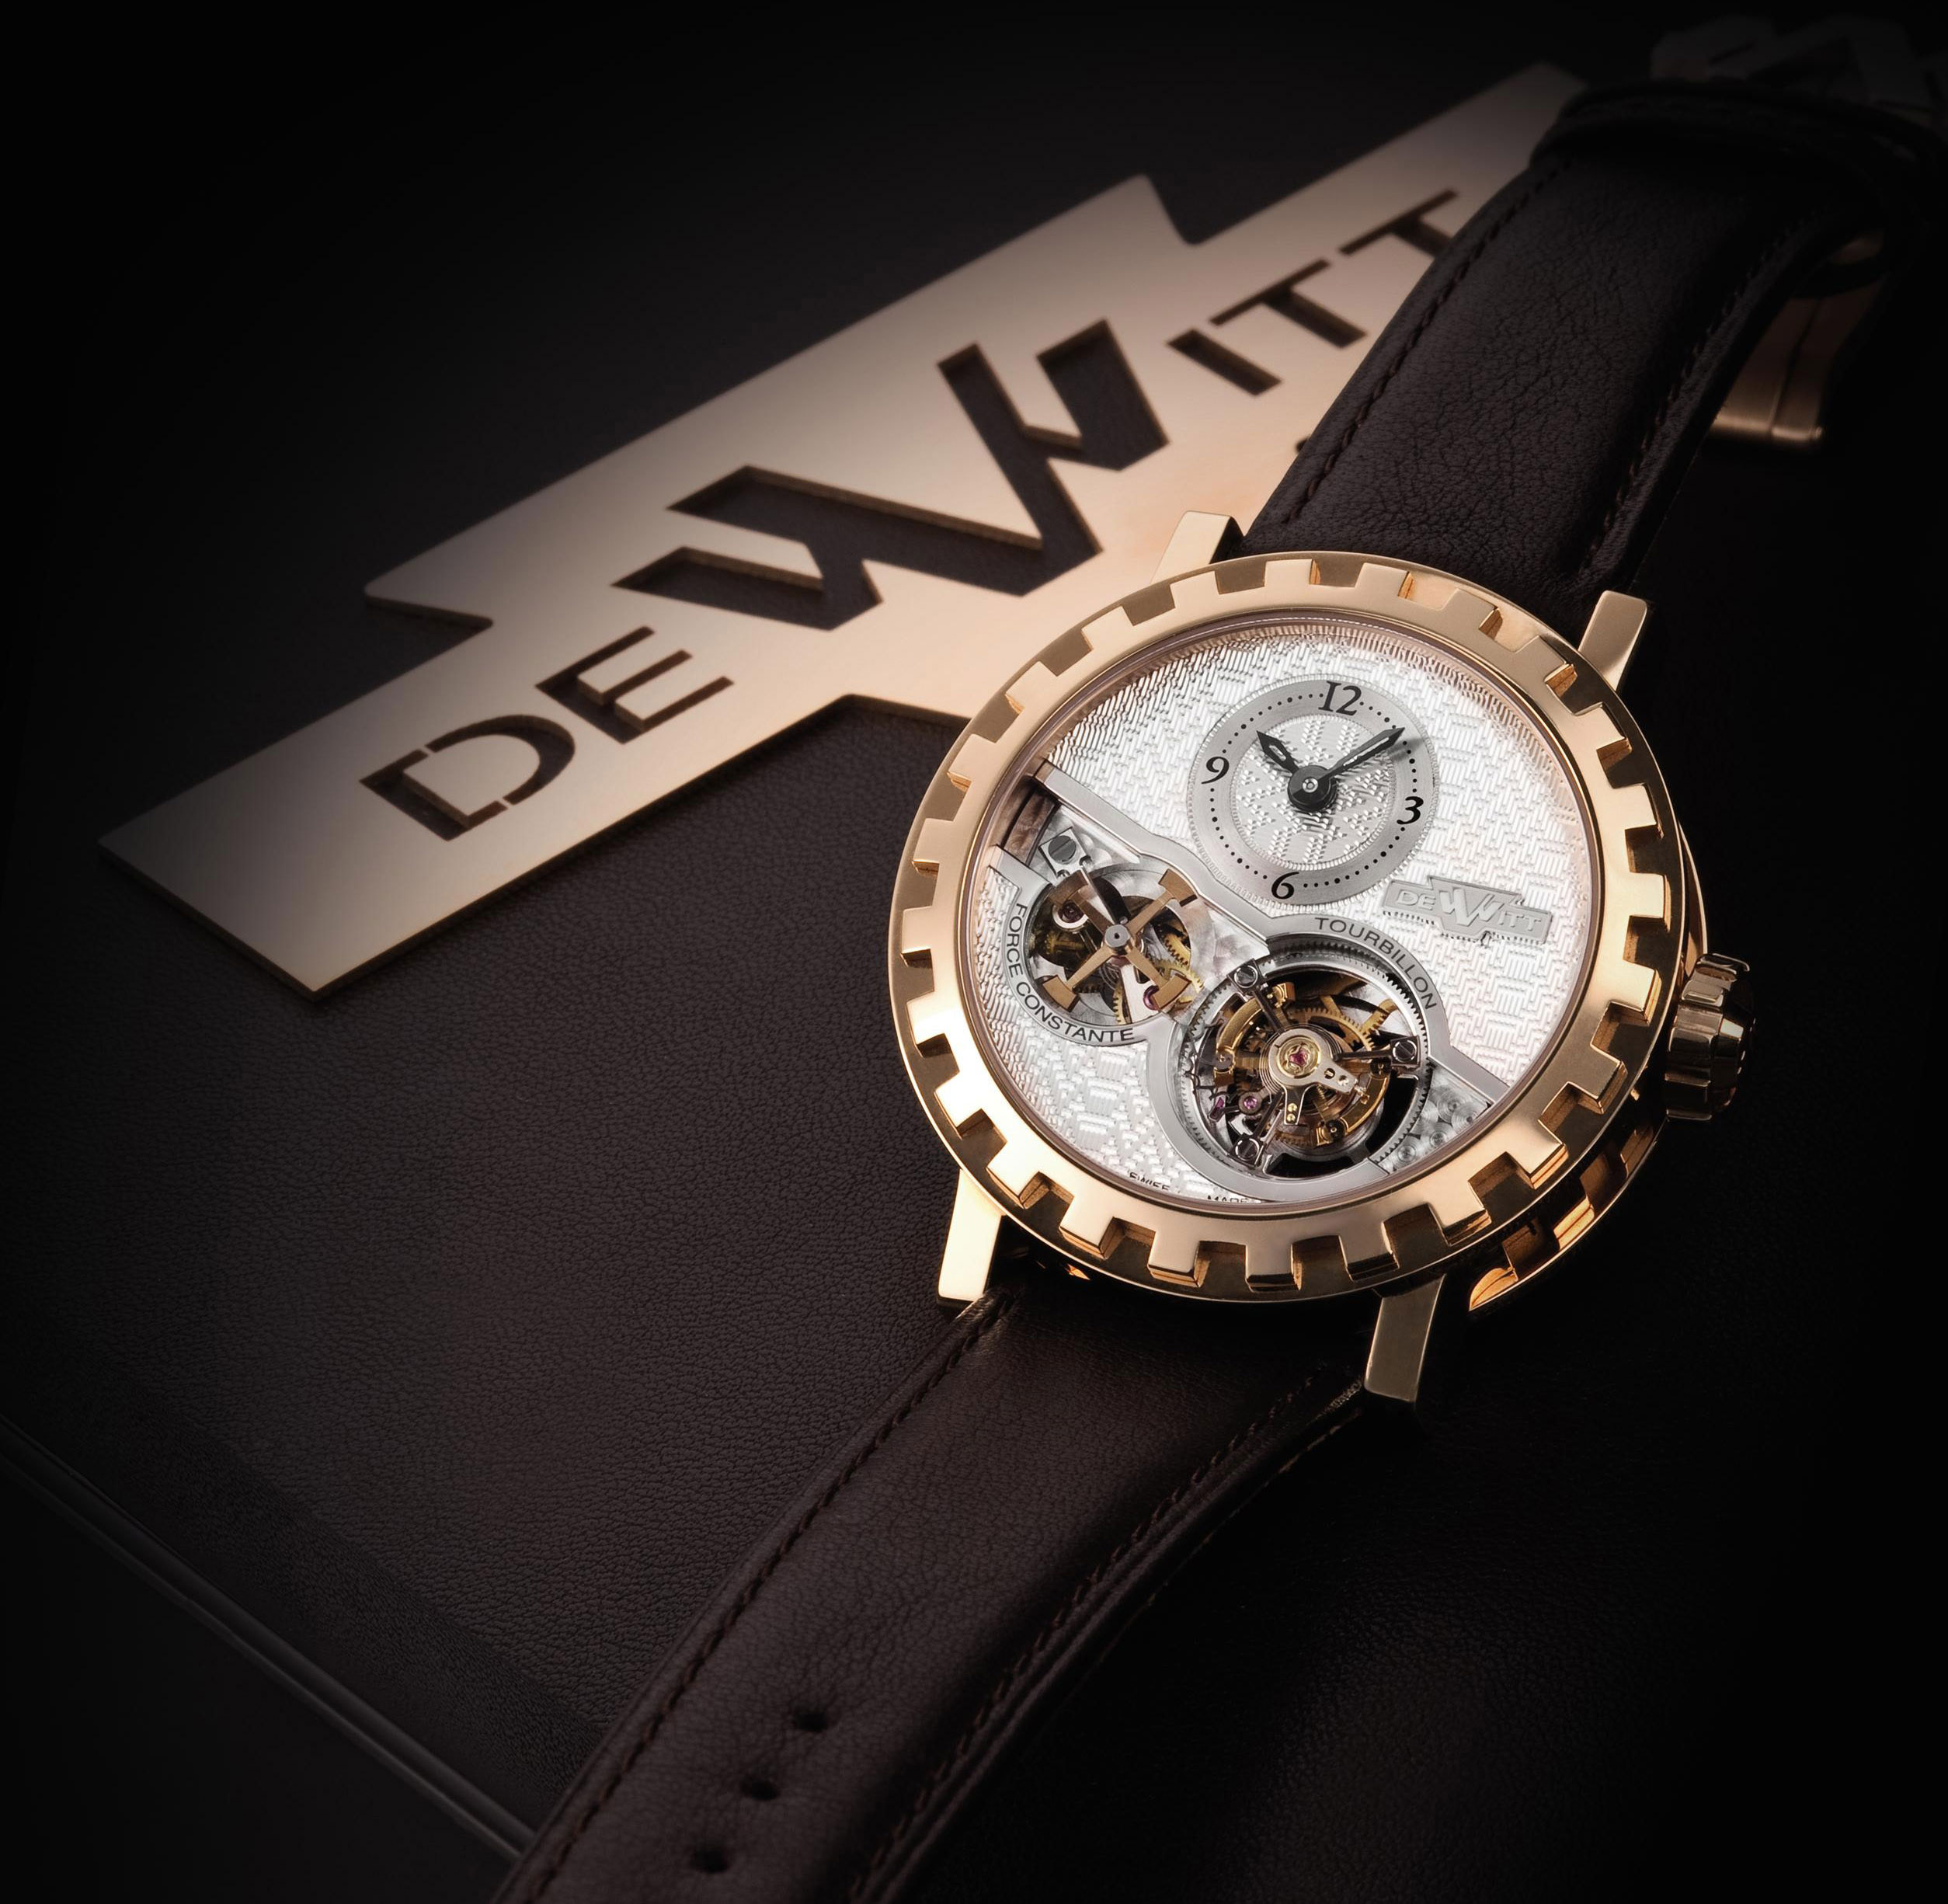 DEWITT, ACADEMIA TOURBILLON FORCE CONSTANTE  PINK GOLD MANUALLY-WOUND TOURBILLON WRISTWATCH WITH CONSTANT FORCE DEVICE, PIECE UNIQUE